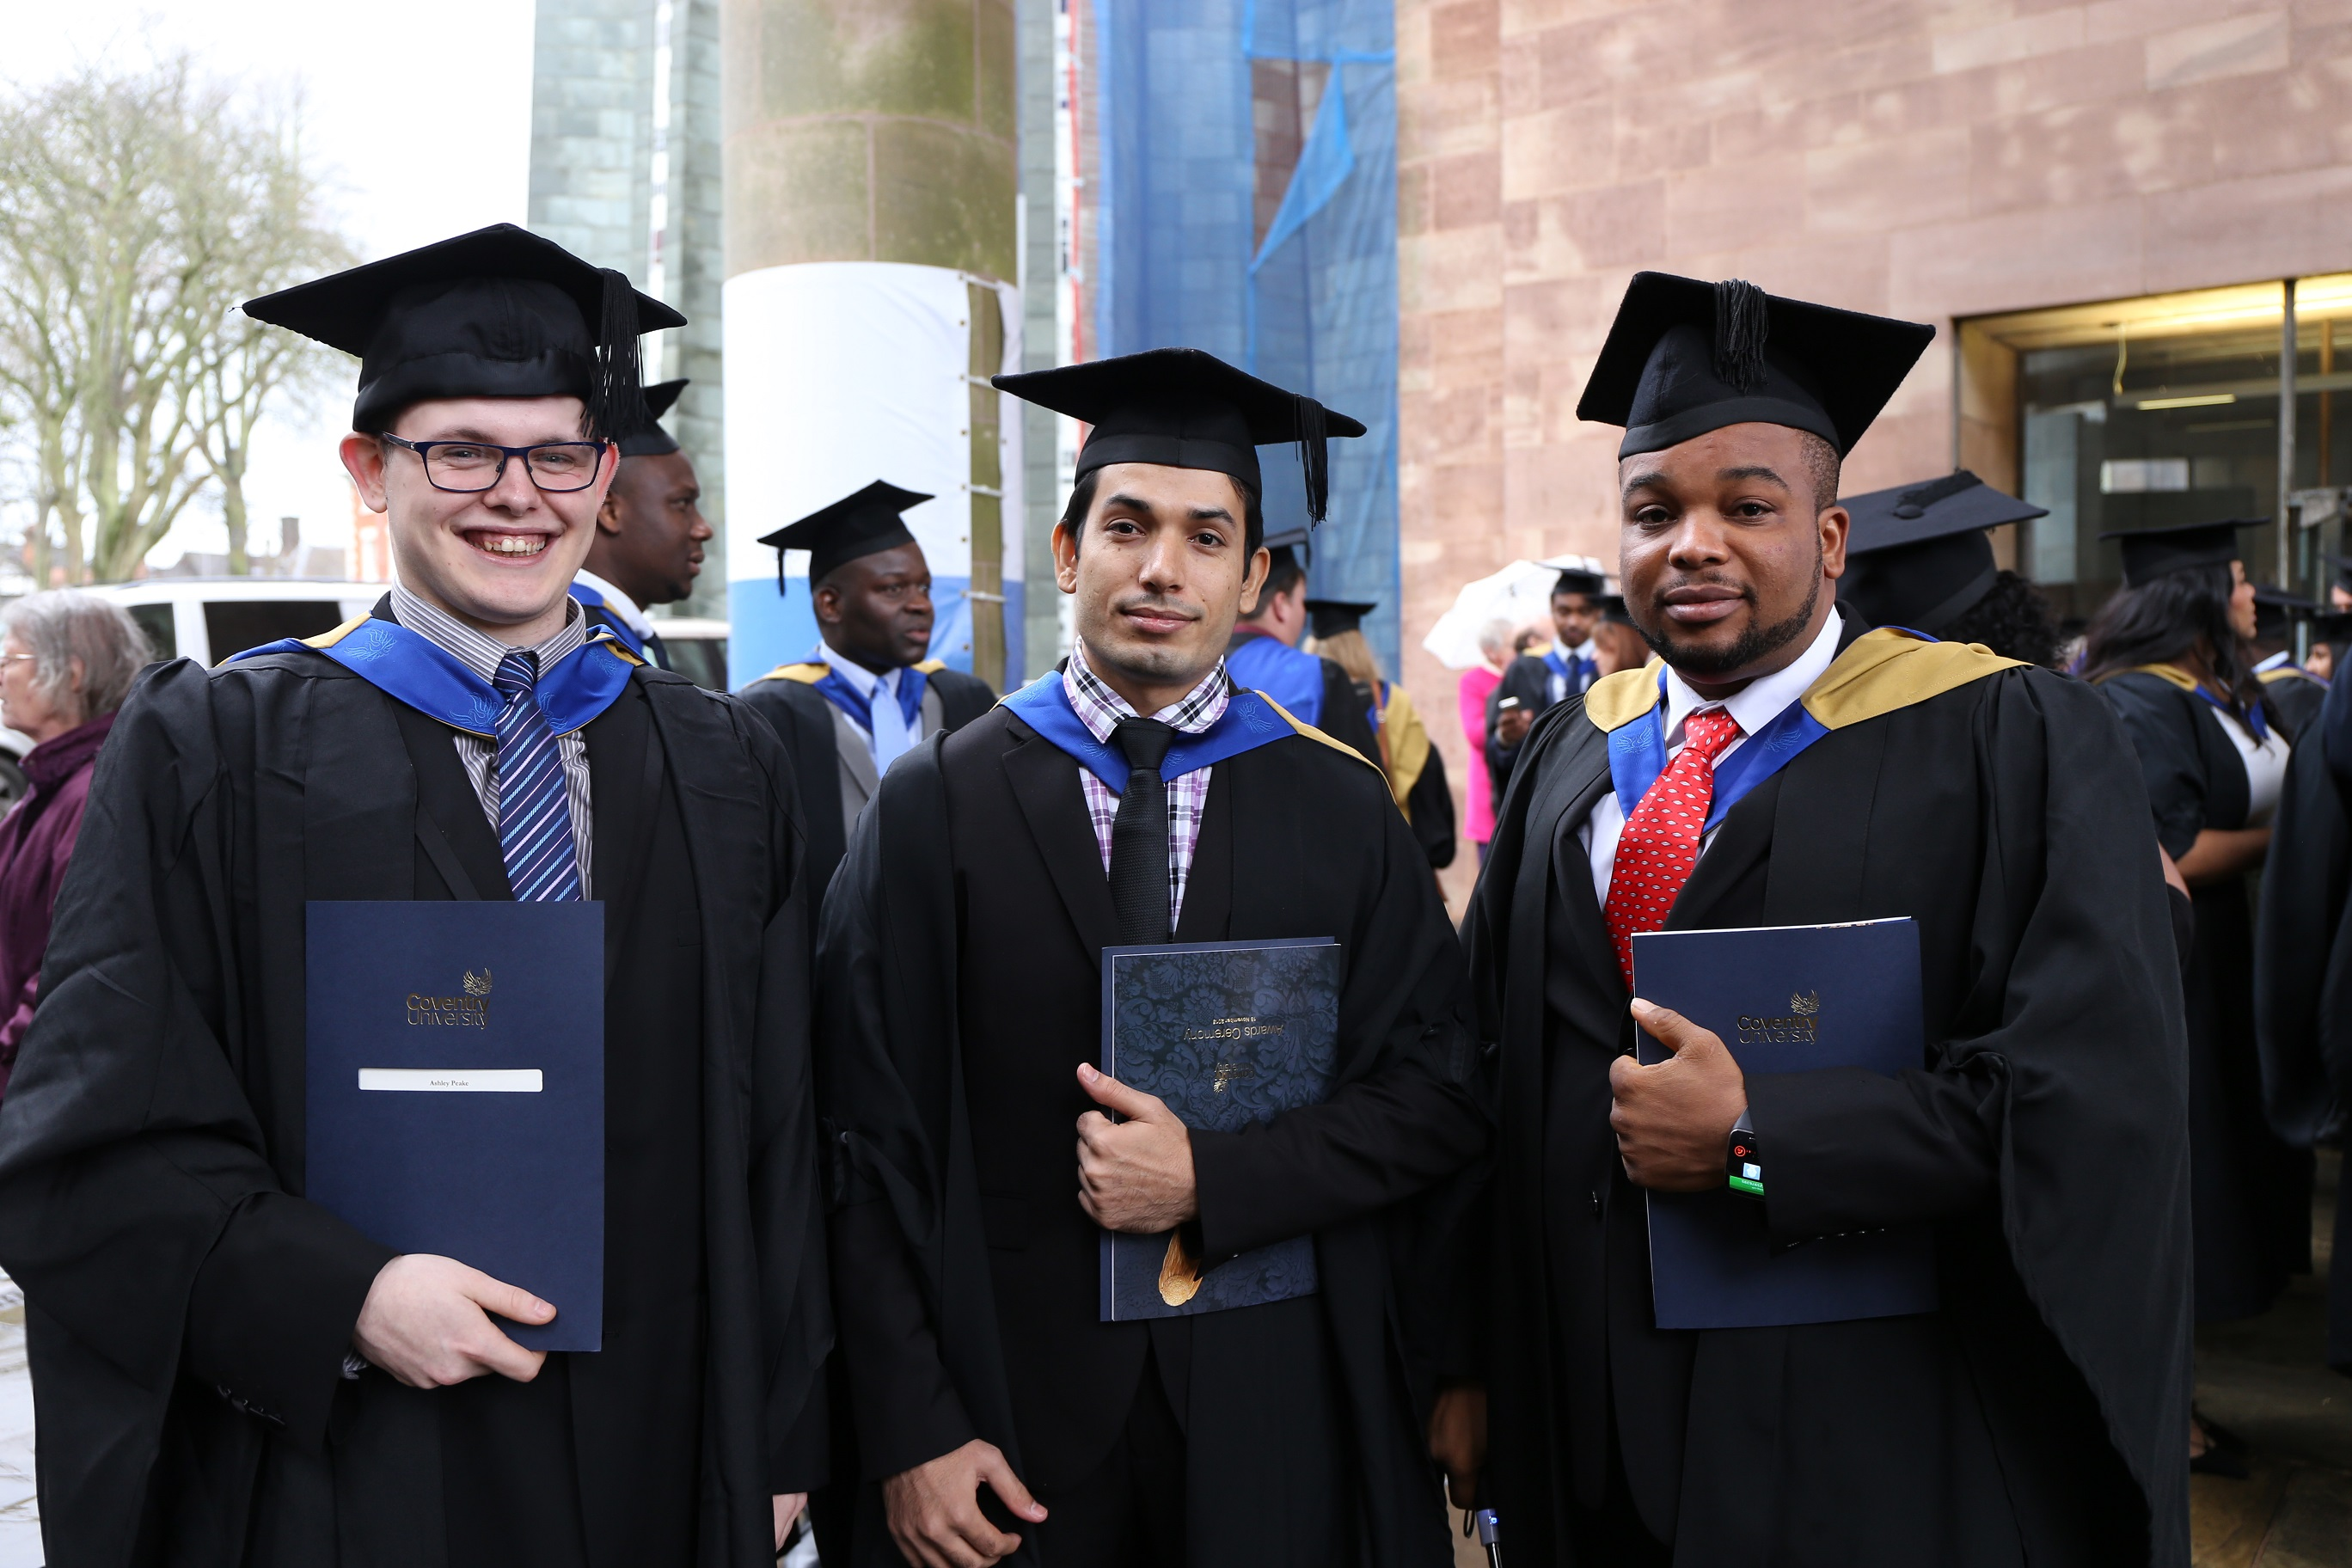 Coventry University Graduation 2015